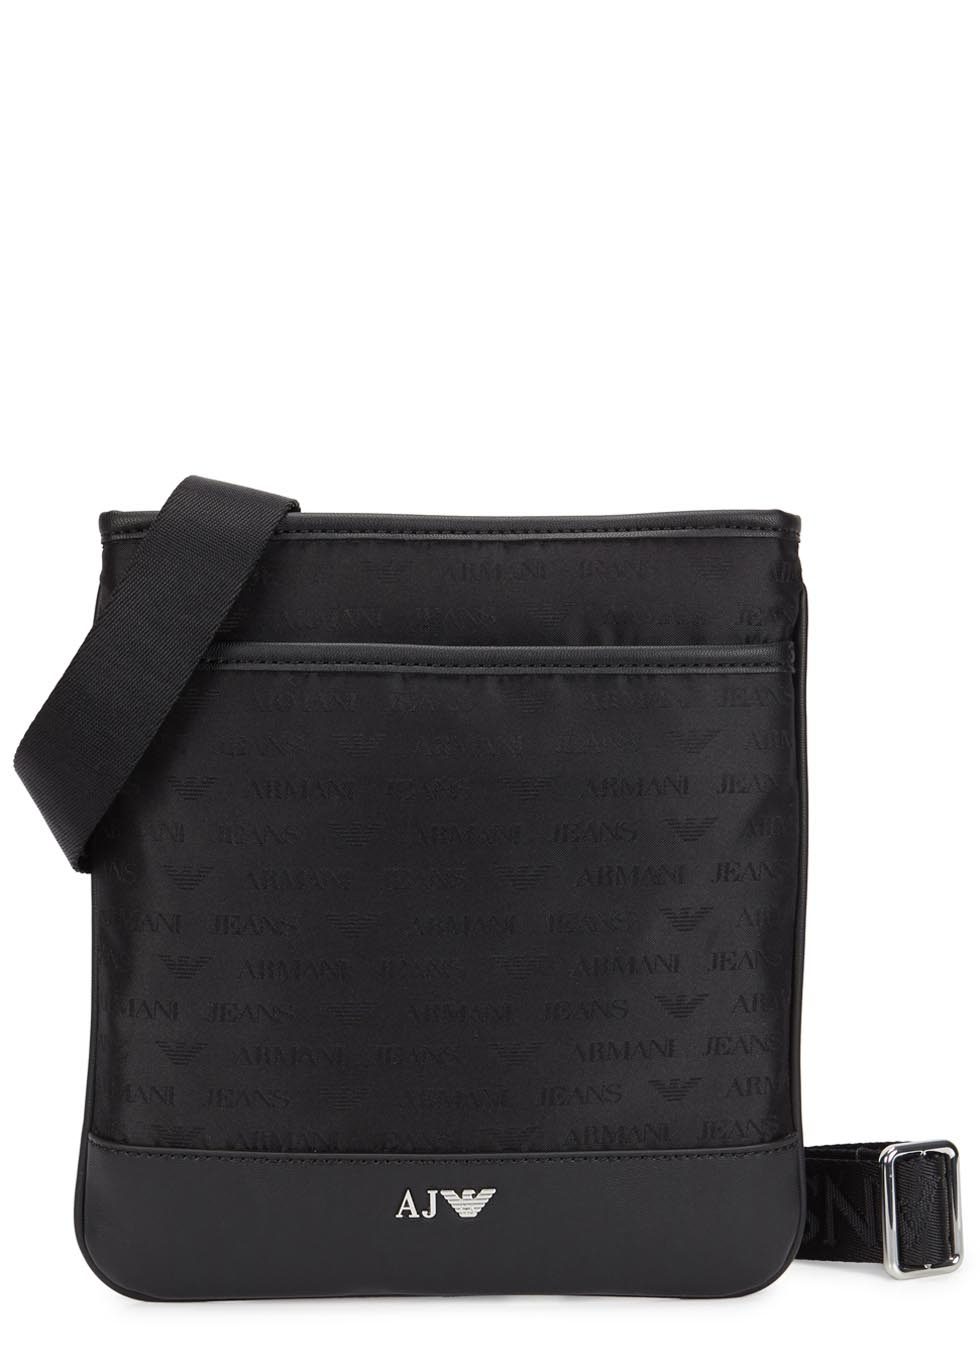 3ebdcf5549c7 Armani Jeans Black Monogrammed Cross-body Bag in Black for Men - Lyst